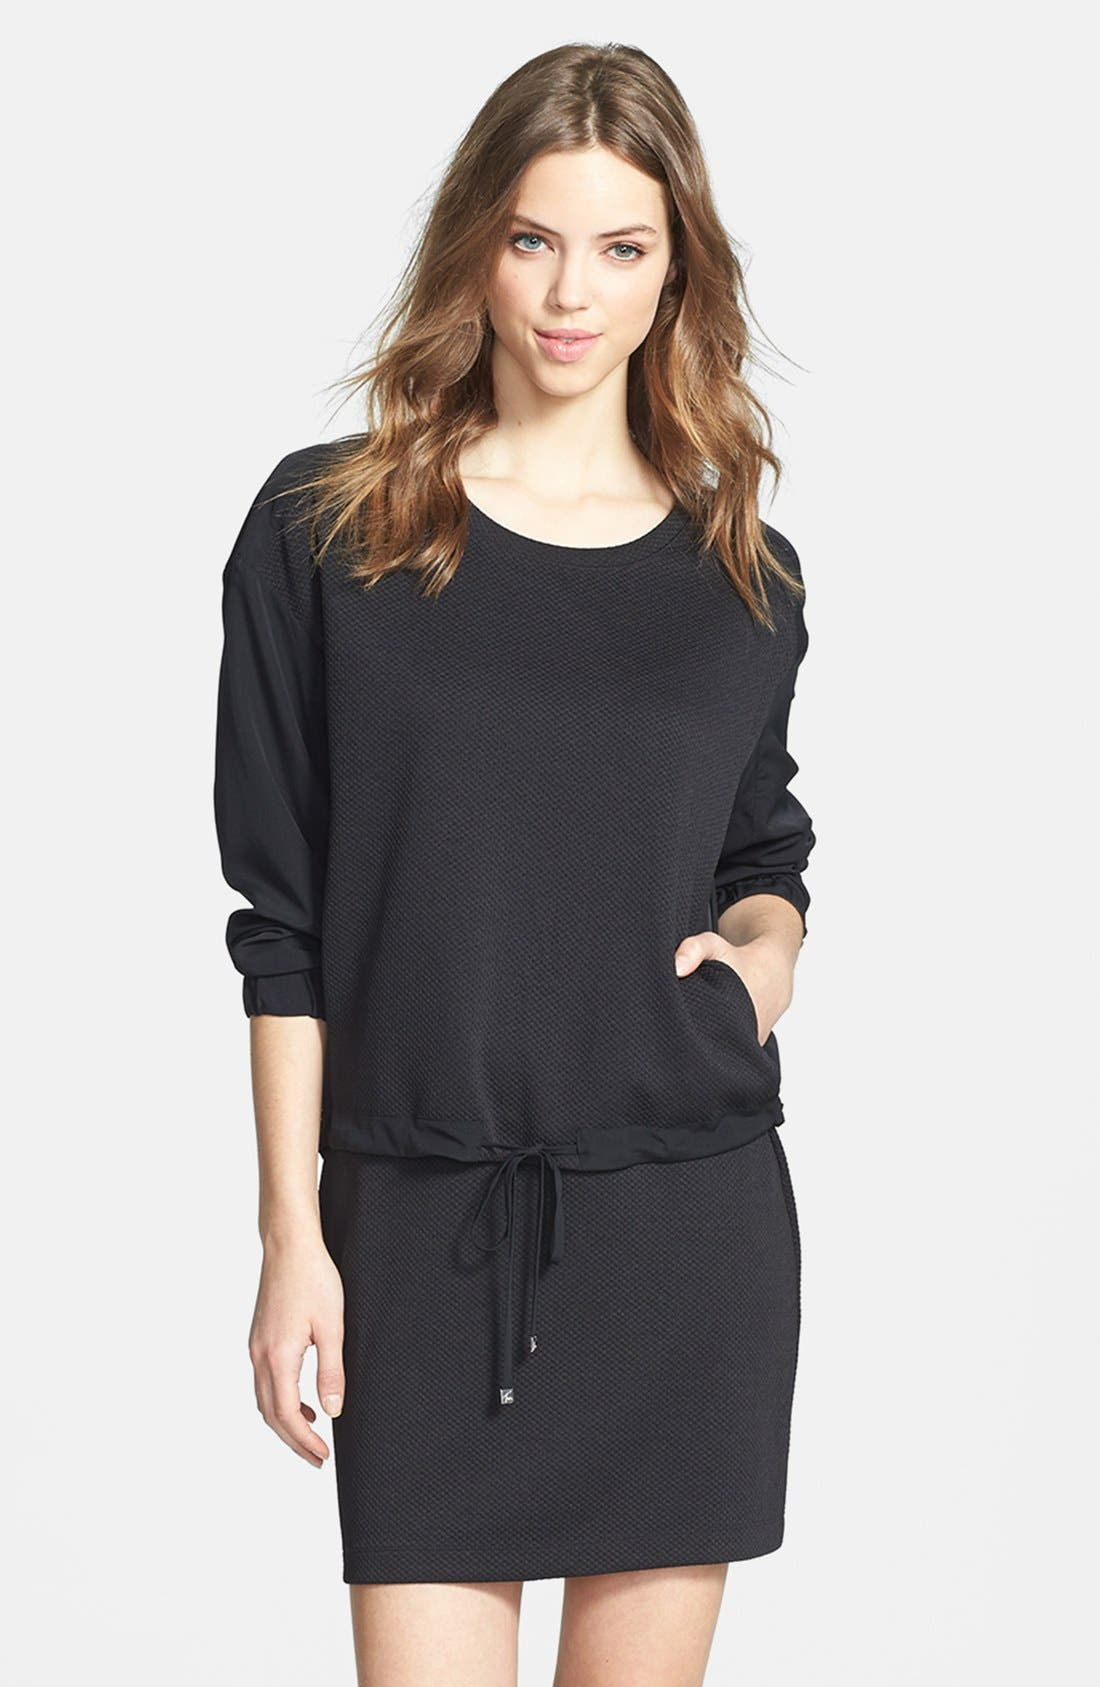 Alternate Image 1 Selected - Two by Vince Camuto 'Tech' Waffle Knit Sweatshirt